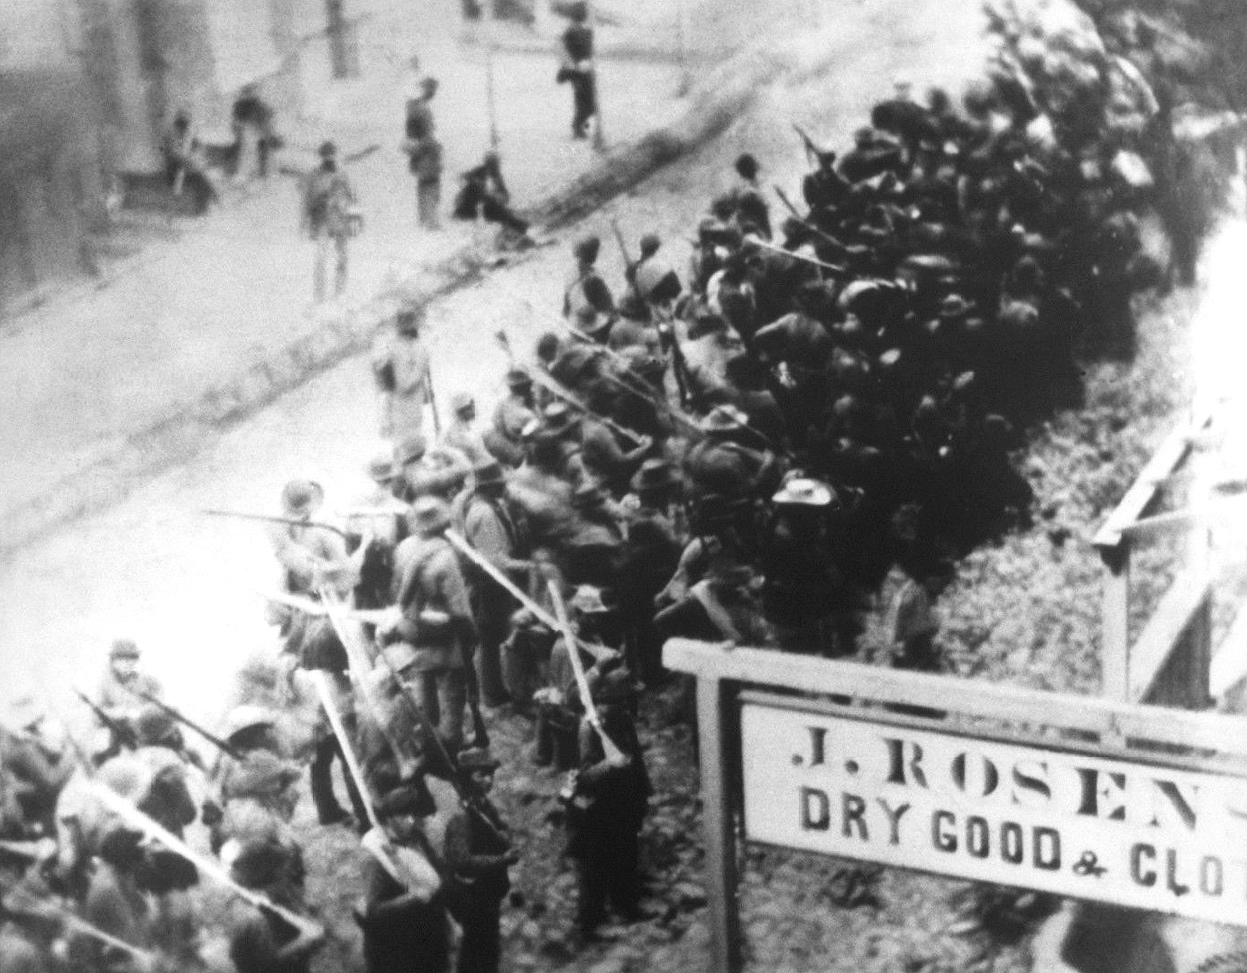 https://upload.wikimedia.org/wikipedia/commons/6/60/Confederates_marching_through_Frederick,_MD_in_1862.jpg